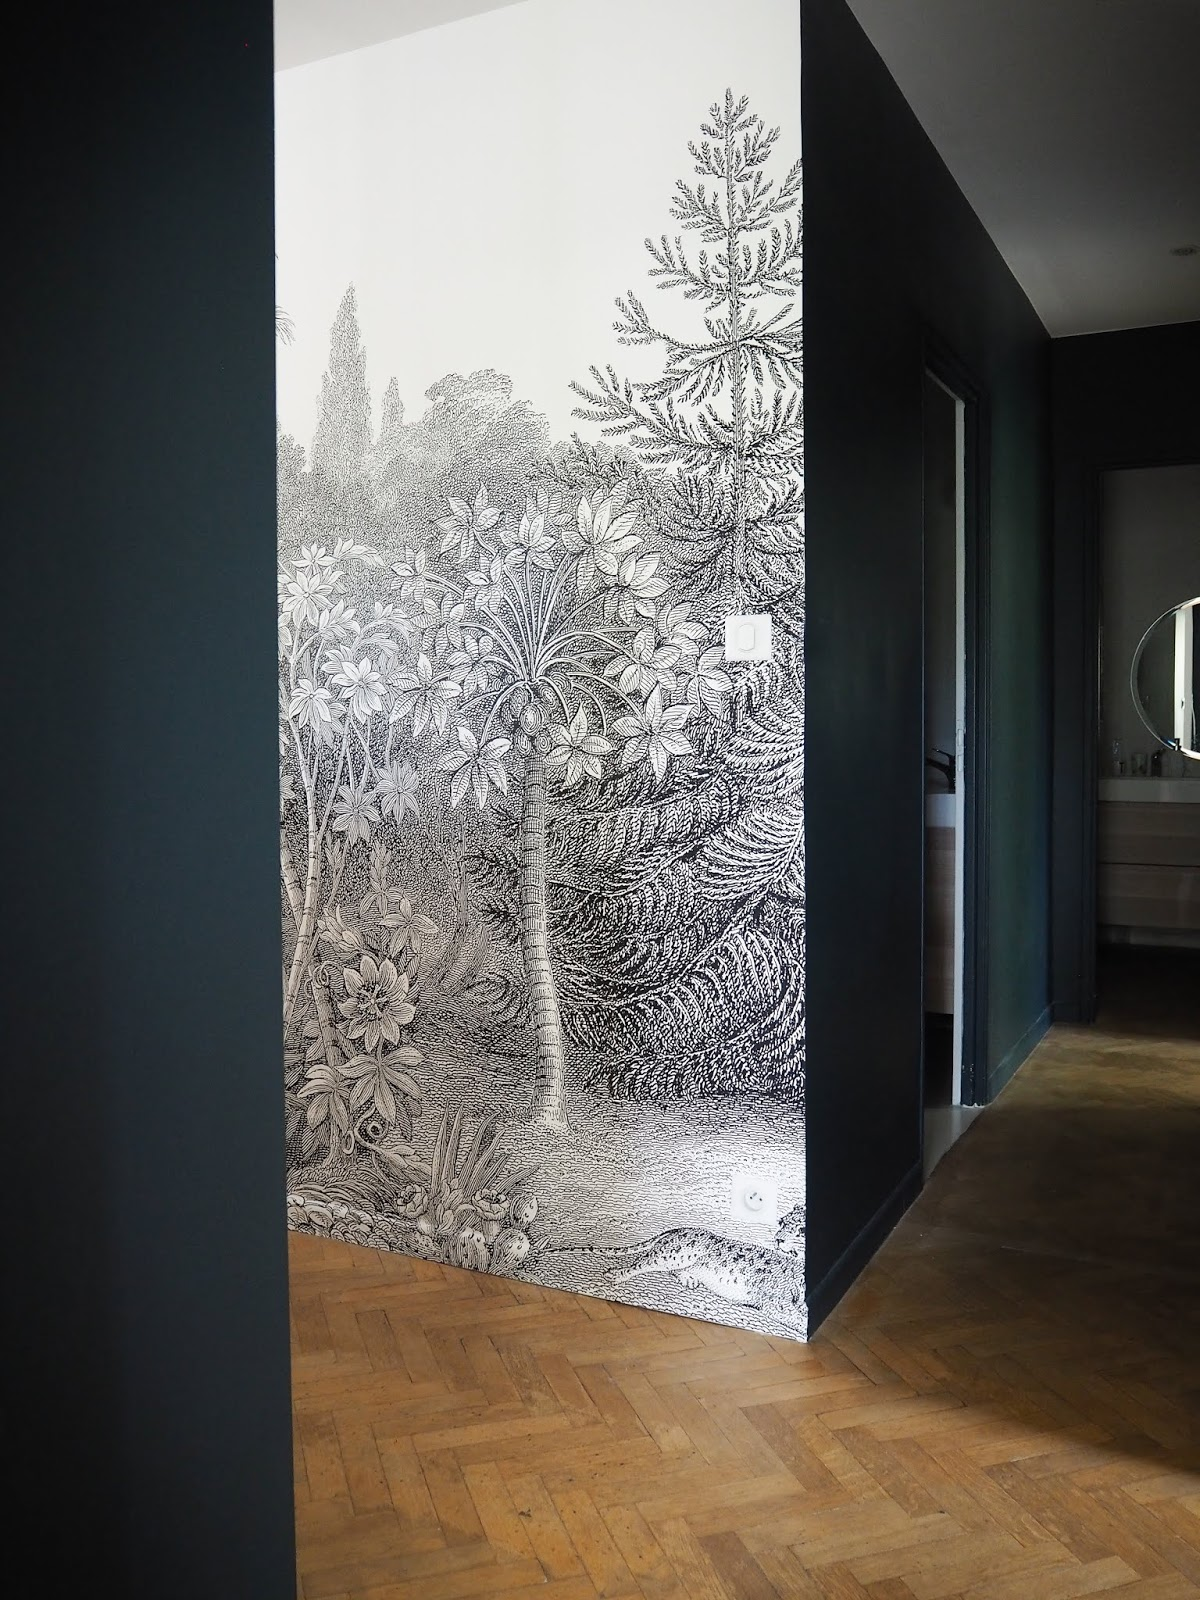 ilaria fatone x rebel walls - panoramic wallpaper in hallway